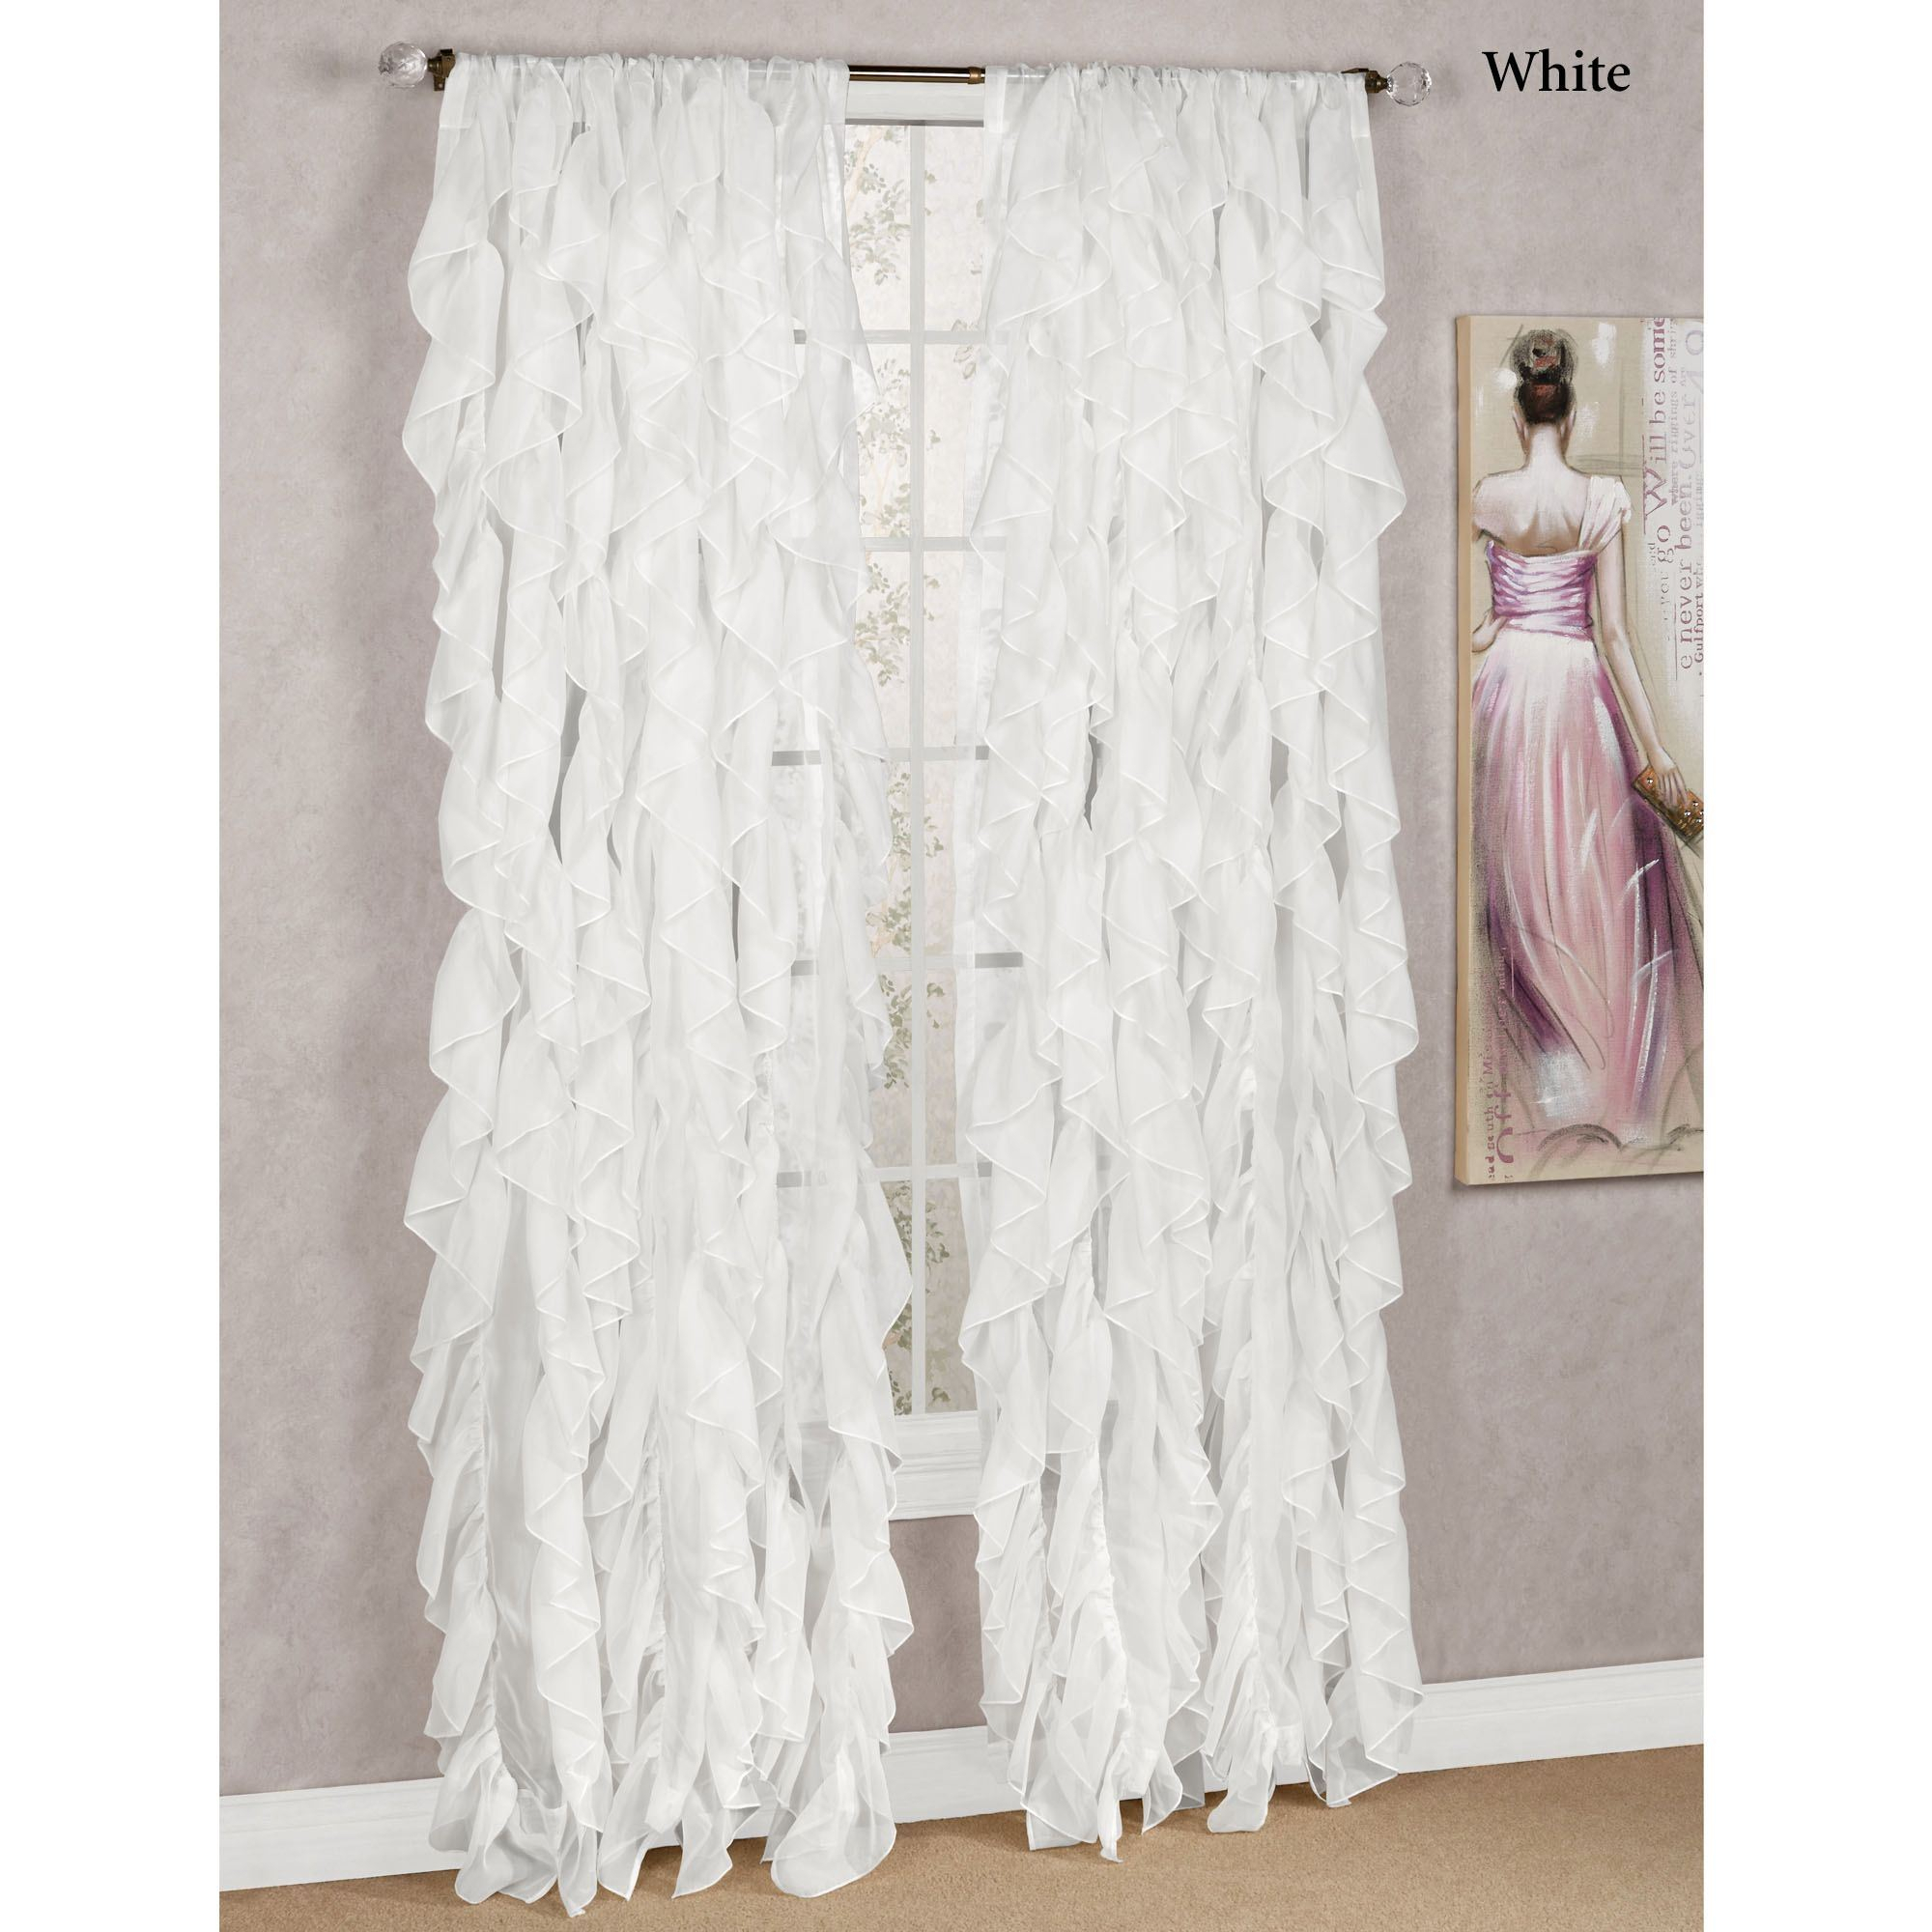 Cascade Sheer Voile Ruffled Window Treatment Throughout Sheer Voile Ruffled Tier Window Curtain Panels (View 2 of 20)